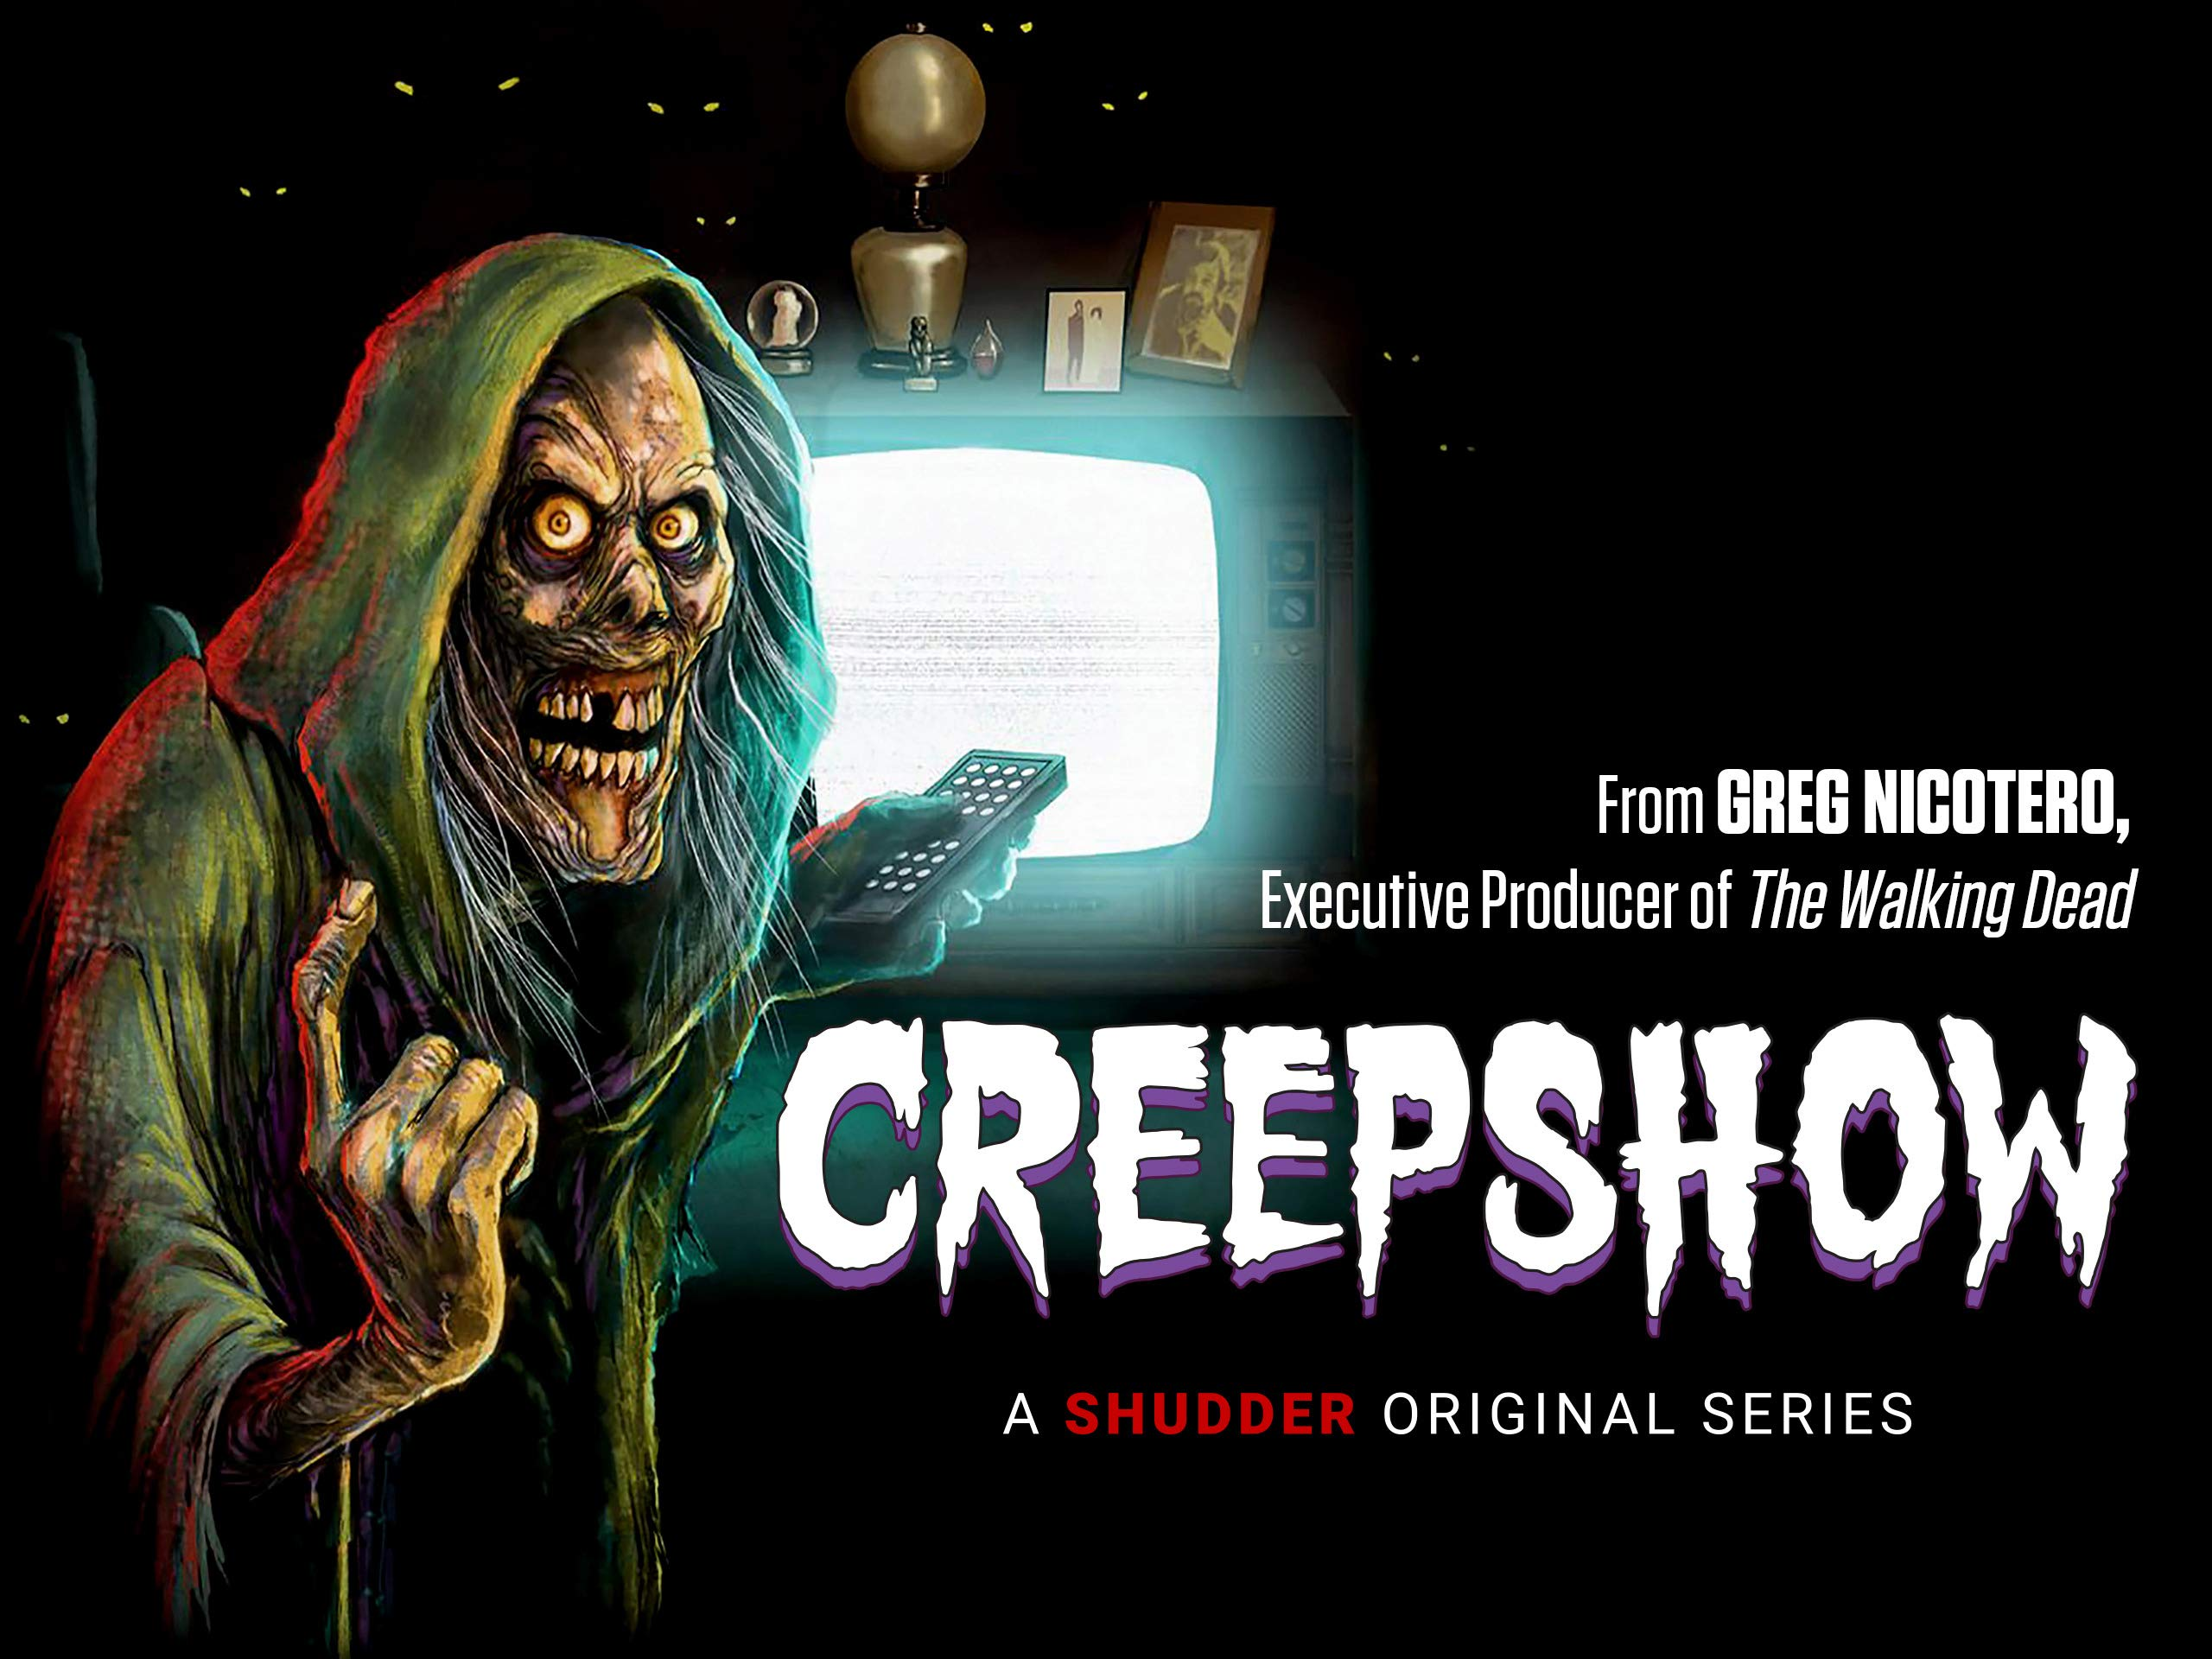 Creepshow Season 2: Release Date, Trailer, Cast and More!